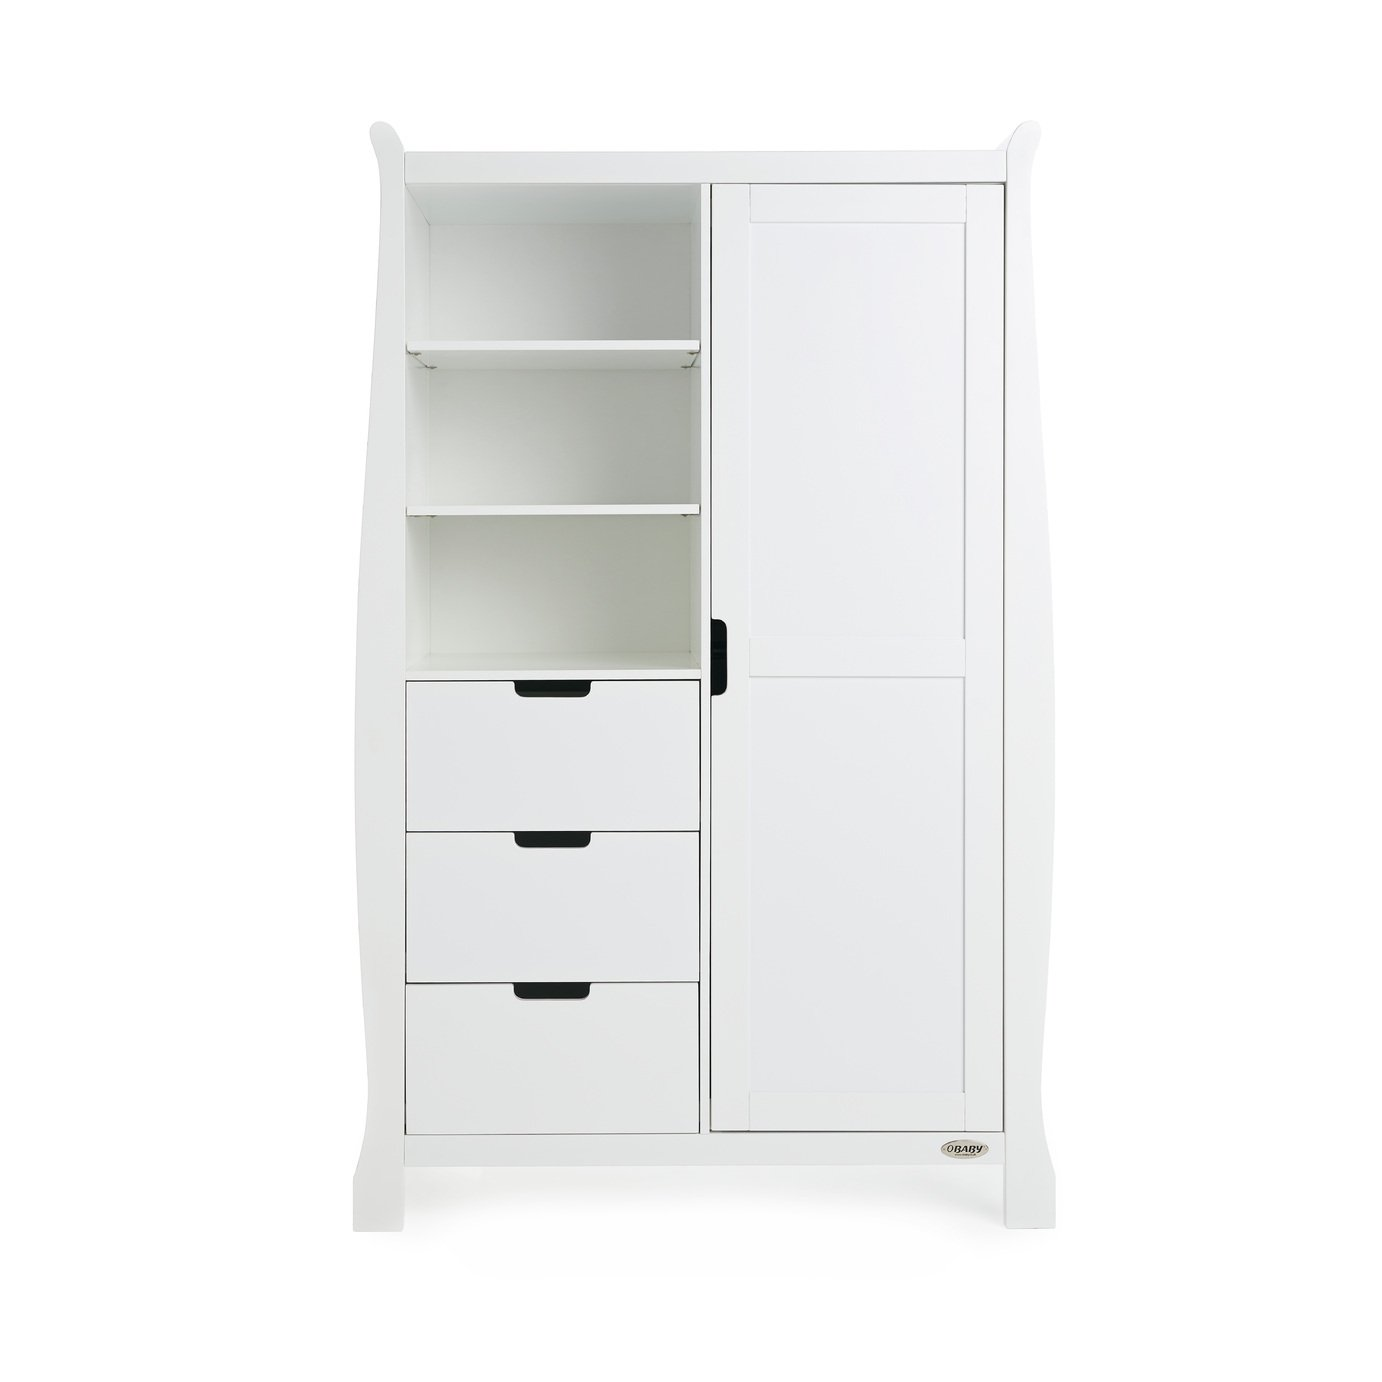 Image of OBaby - Stamford Wardrobe - White